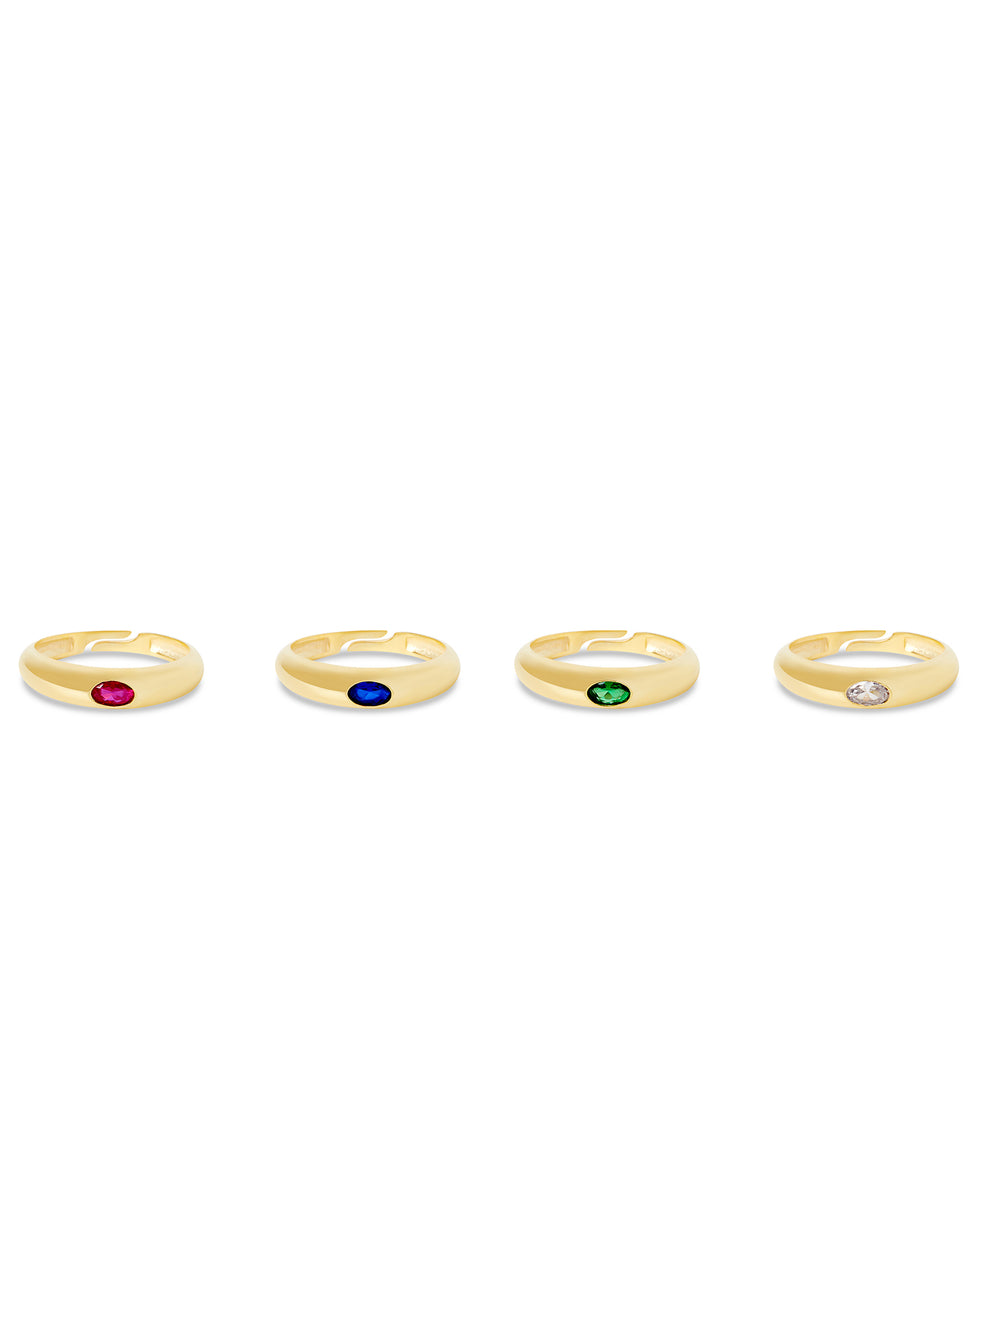 THE COLORED ARC RING